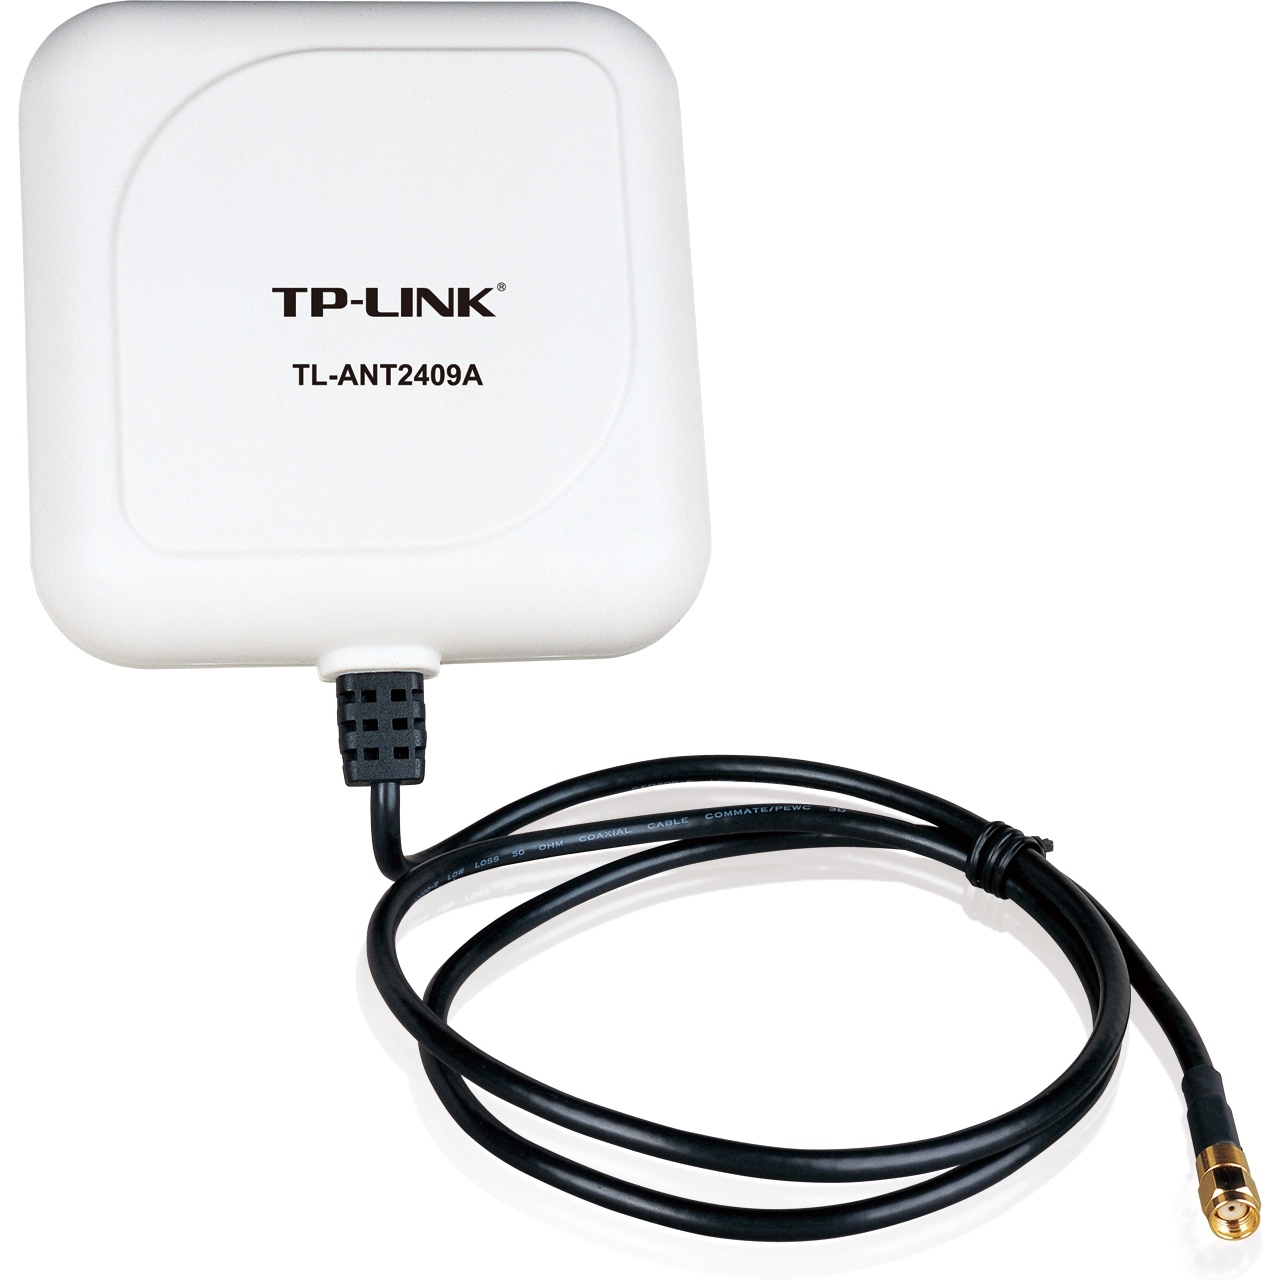 Antenne directionnelle 9 dBi 2,4 GHz TL-ANT2409A TP-LINK